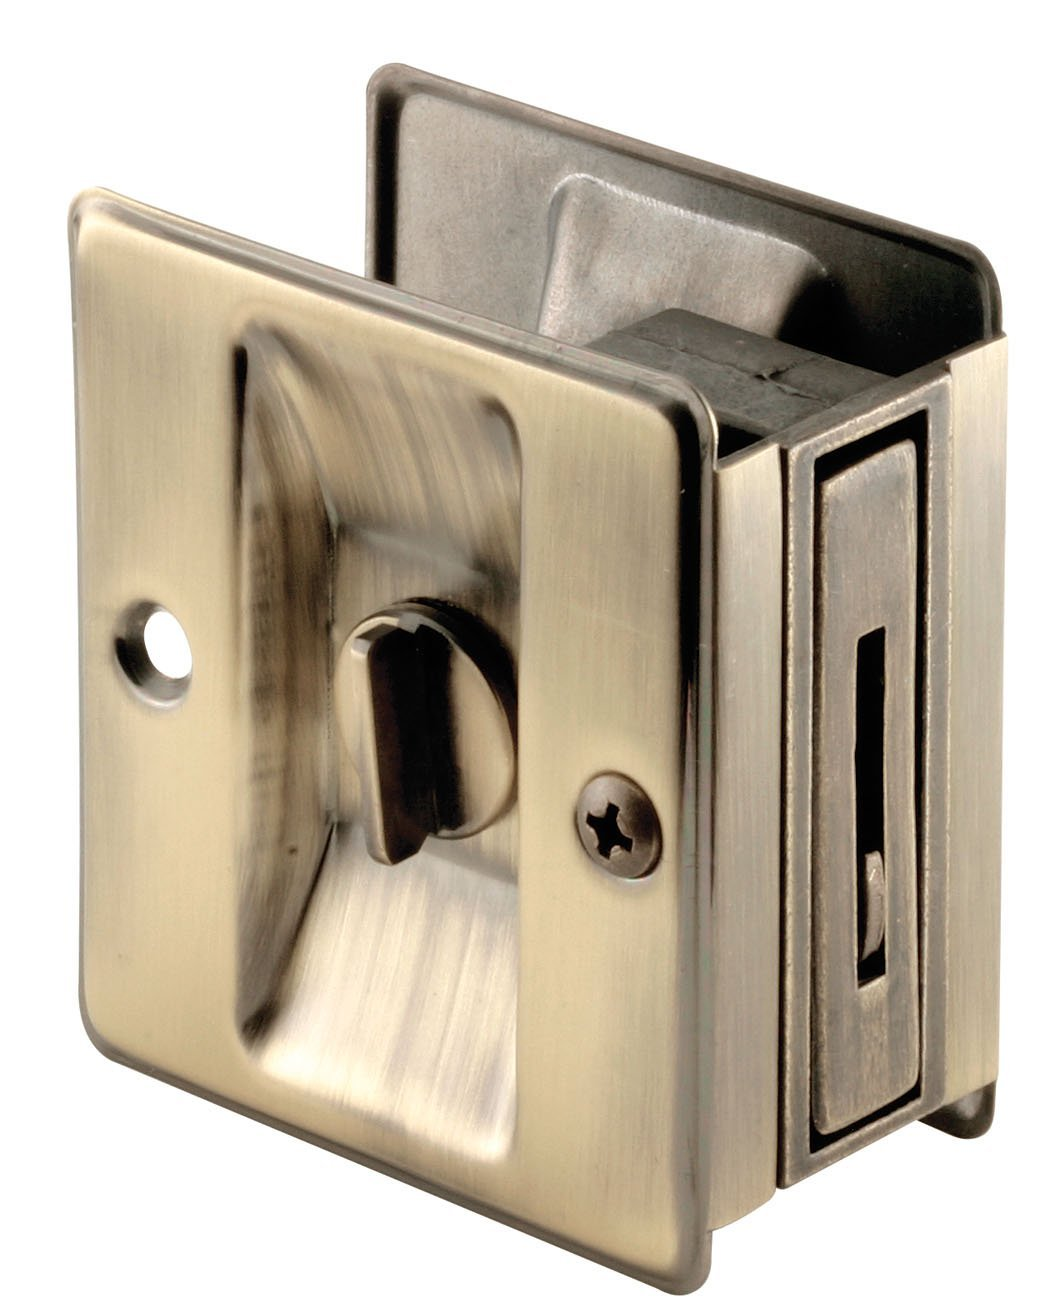 Prime-Line Products N 6774 Pocket Door Privacy Lock with Pull, Antique Brass